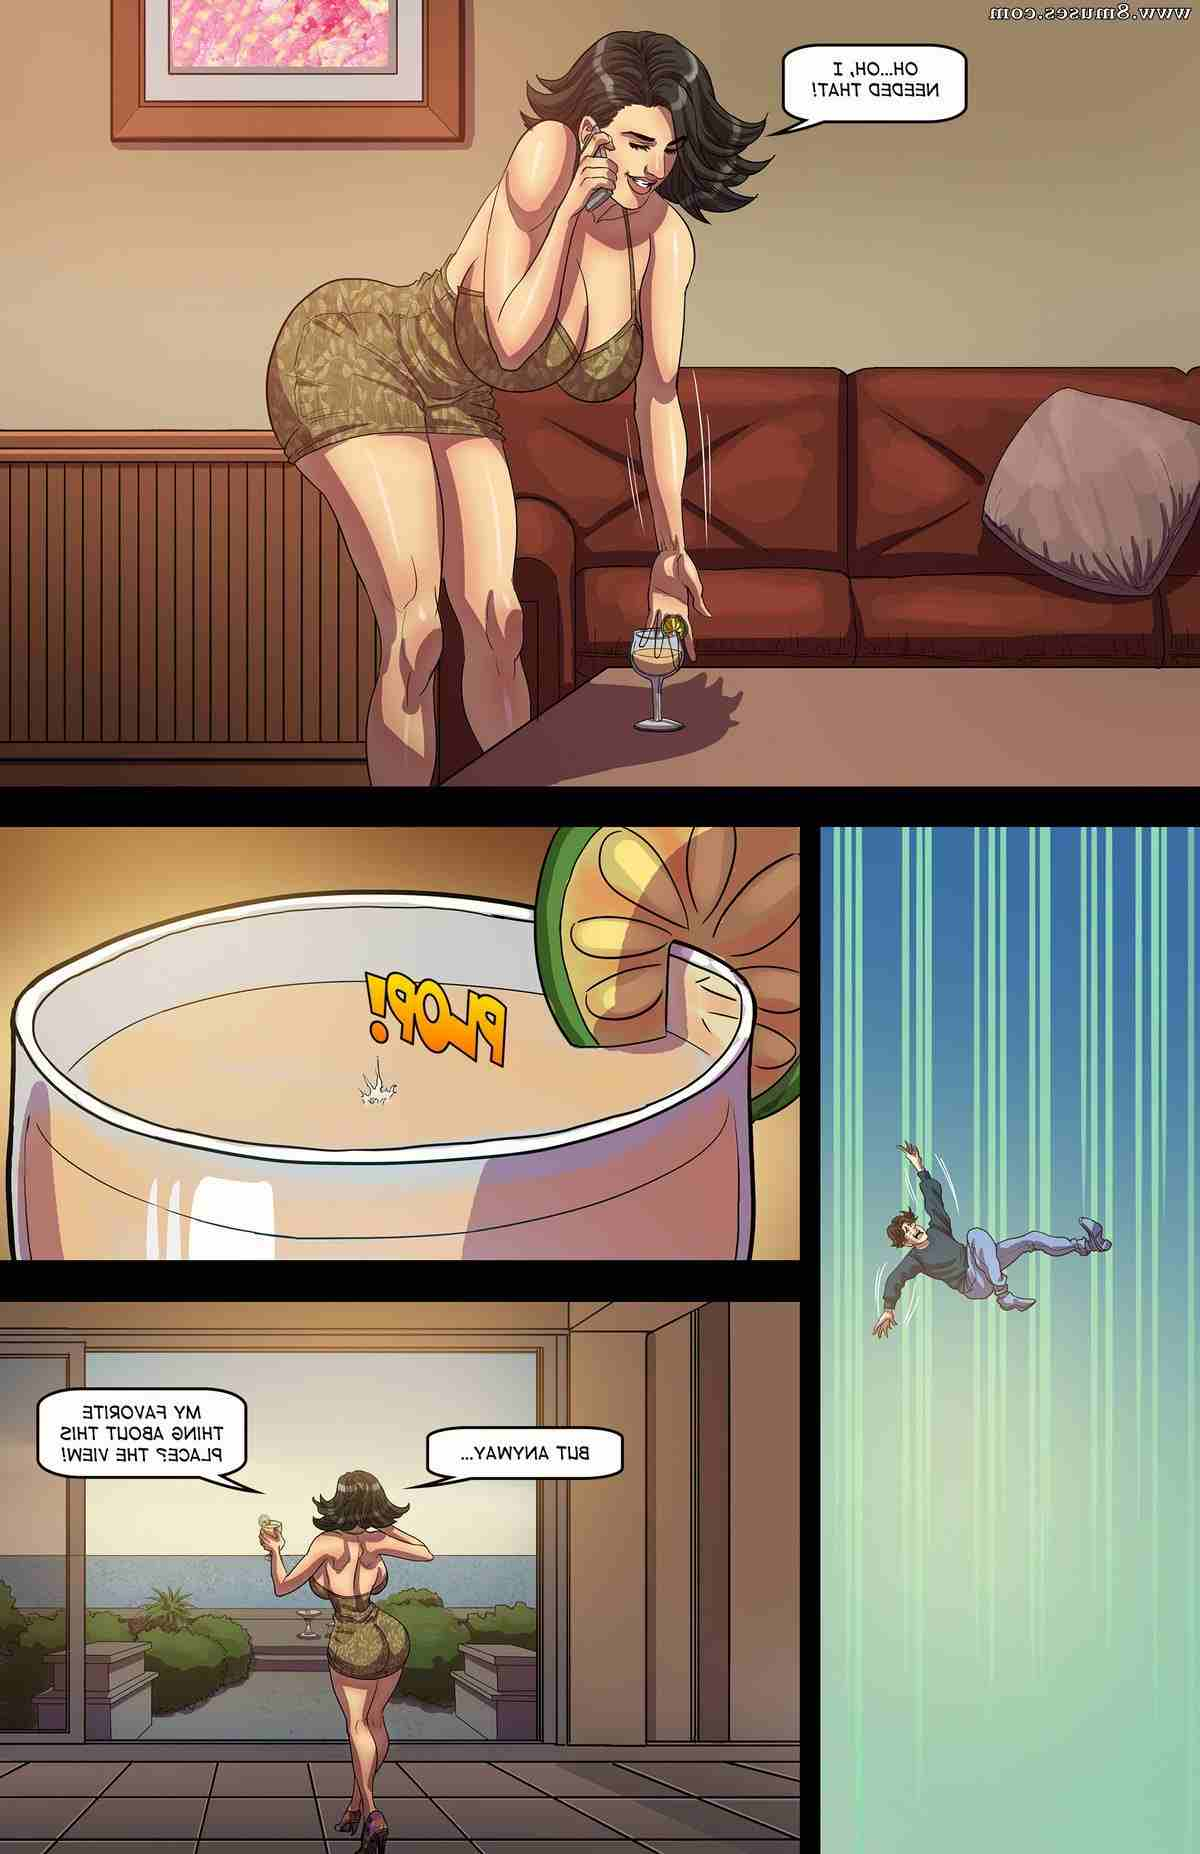 Giantess-Fan-Comics/The-Necklace The_Necklace__8muses_-_Sex_and_Porn_Comics_13.jpg